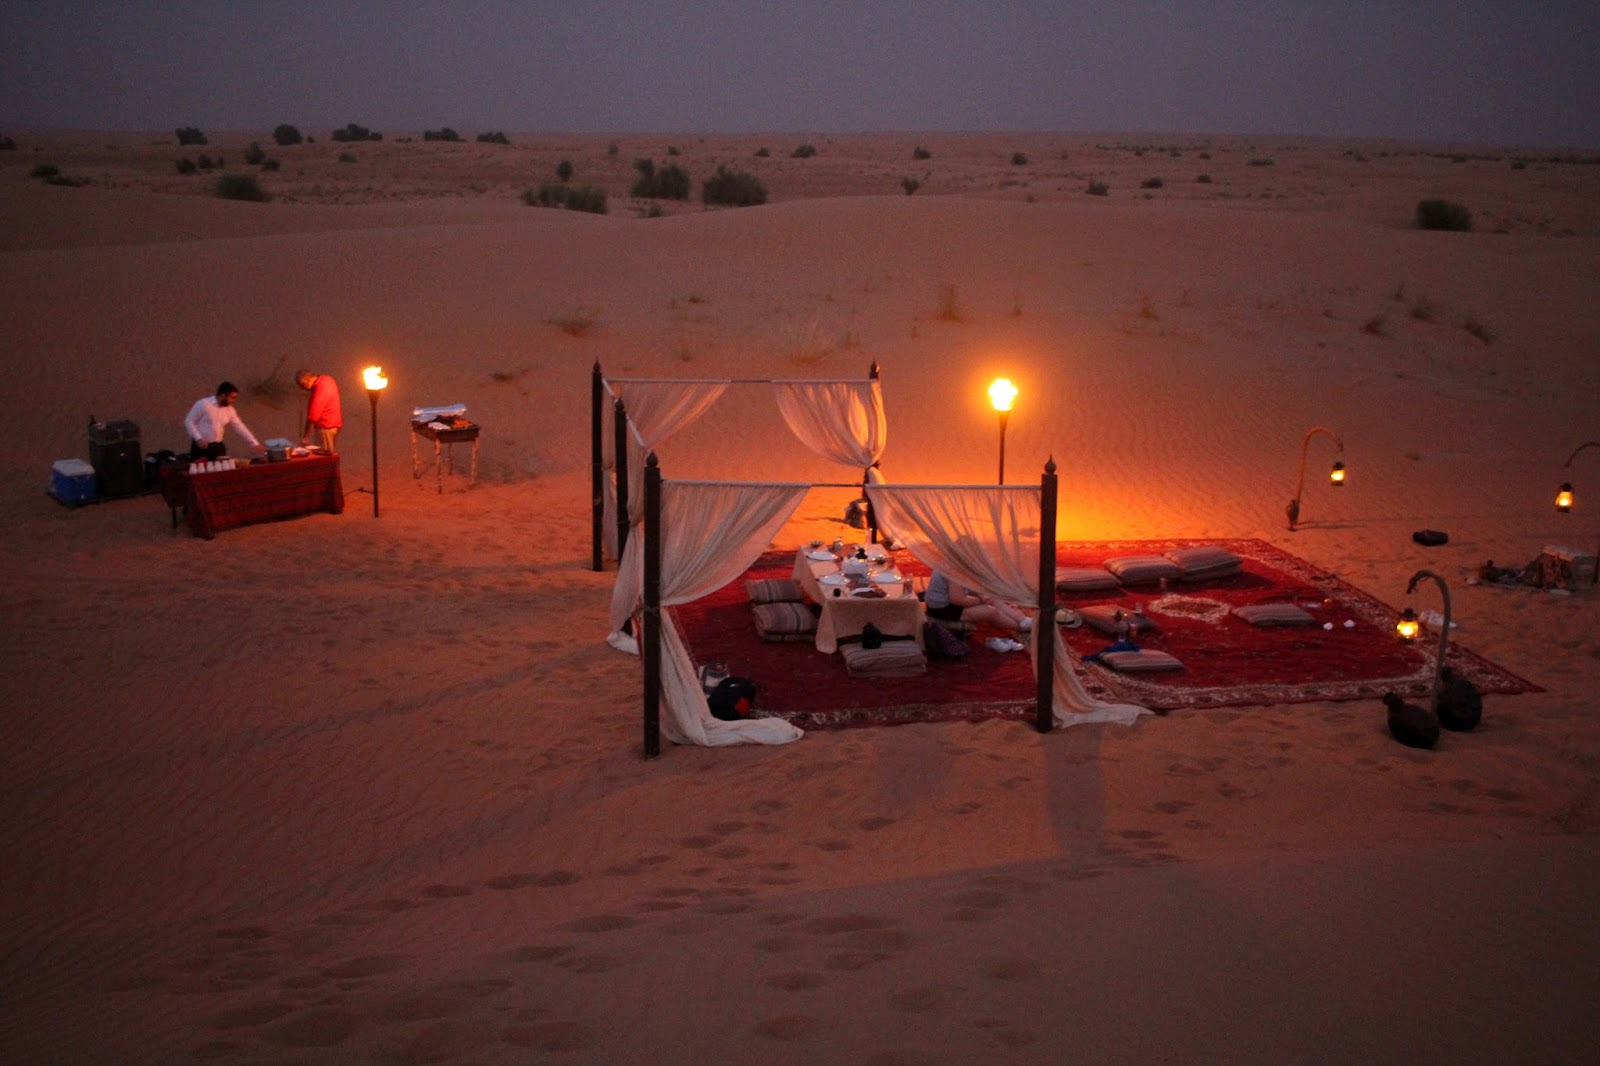 desert adventure dubai arabian nights